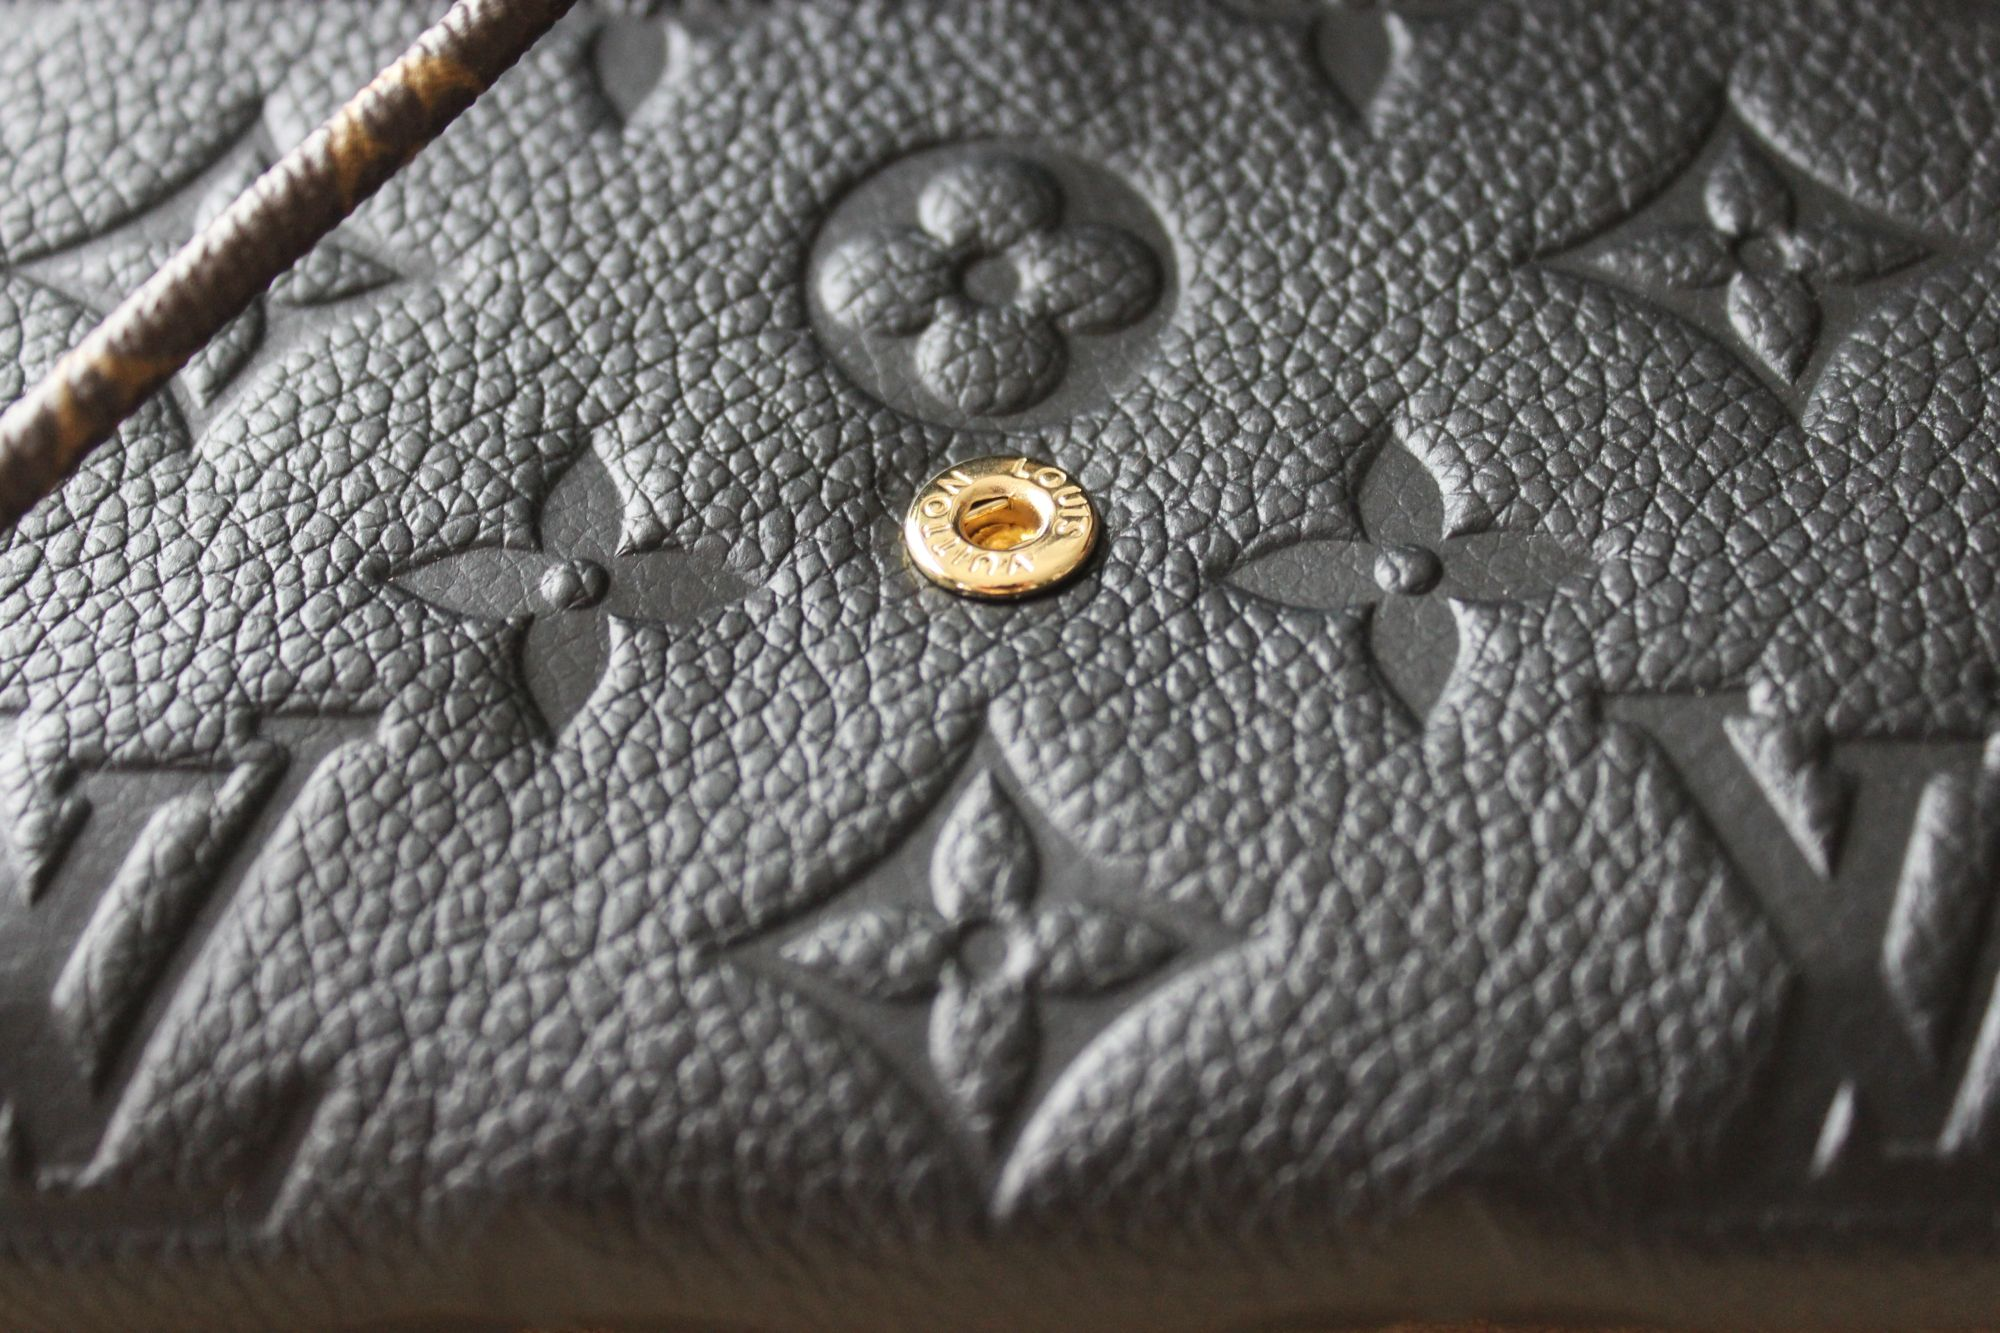 LV Compact Curieuse Wallet in Monogram Empreinte Leather 7